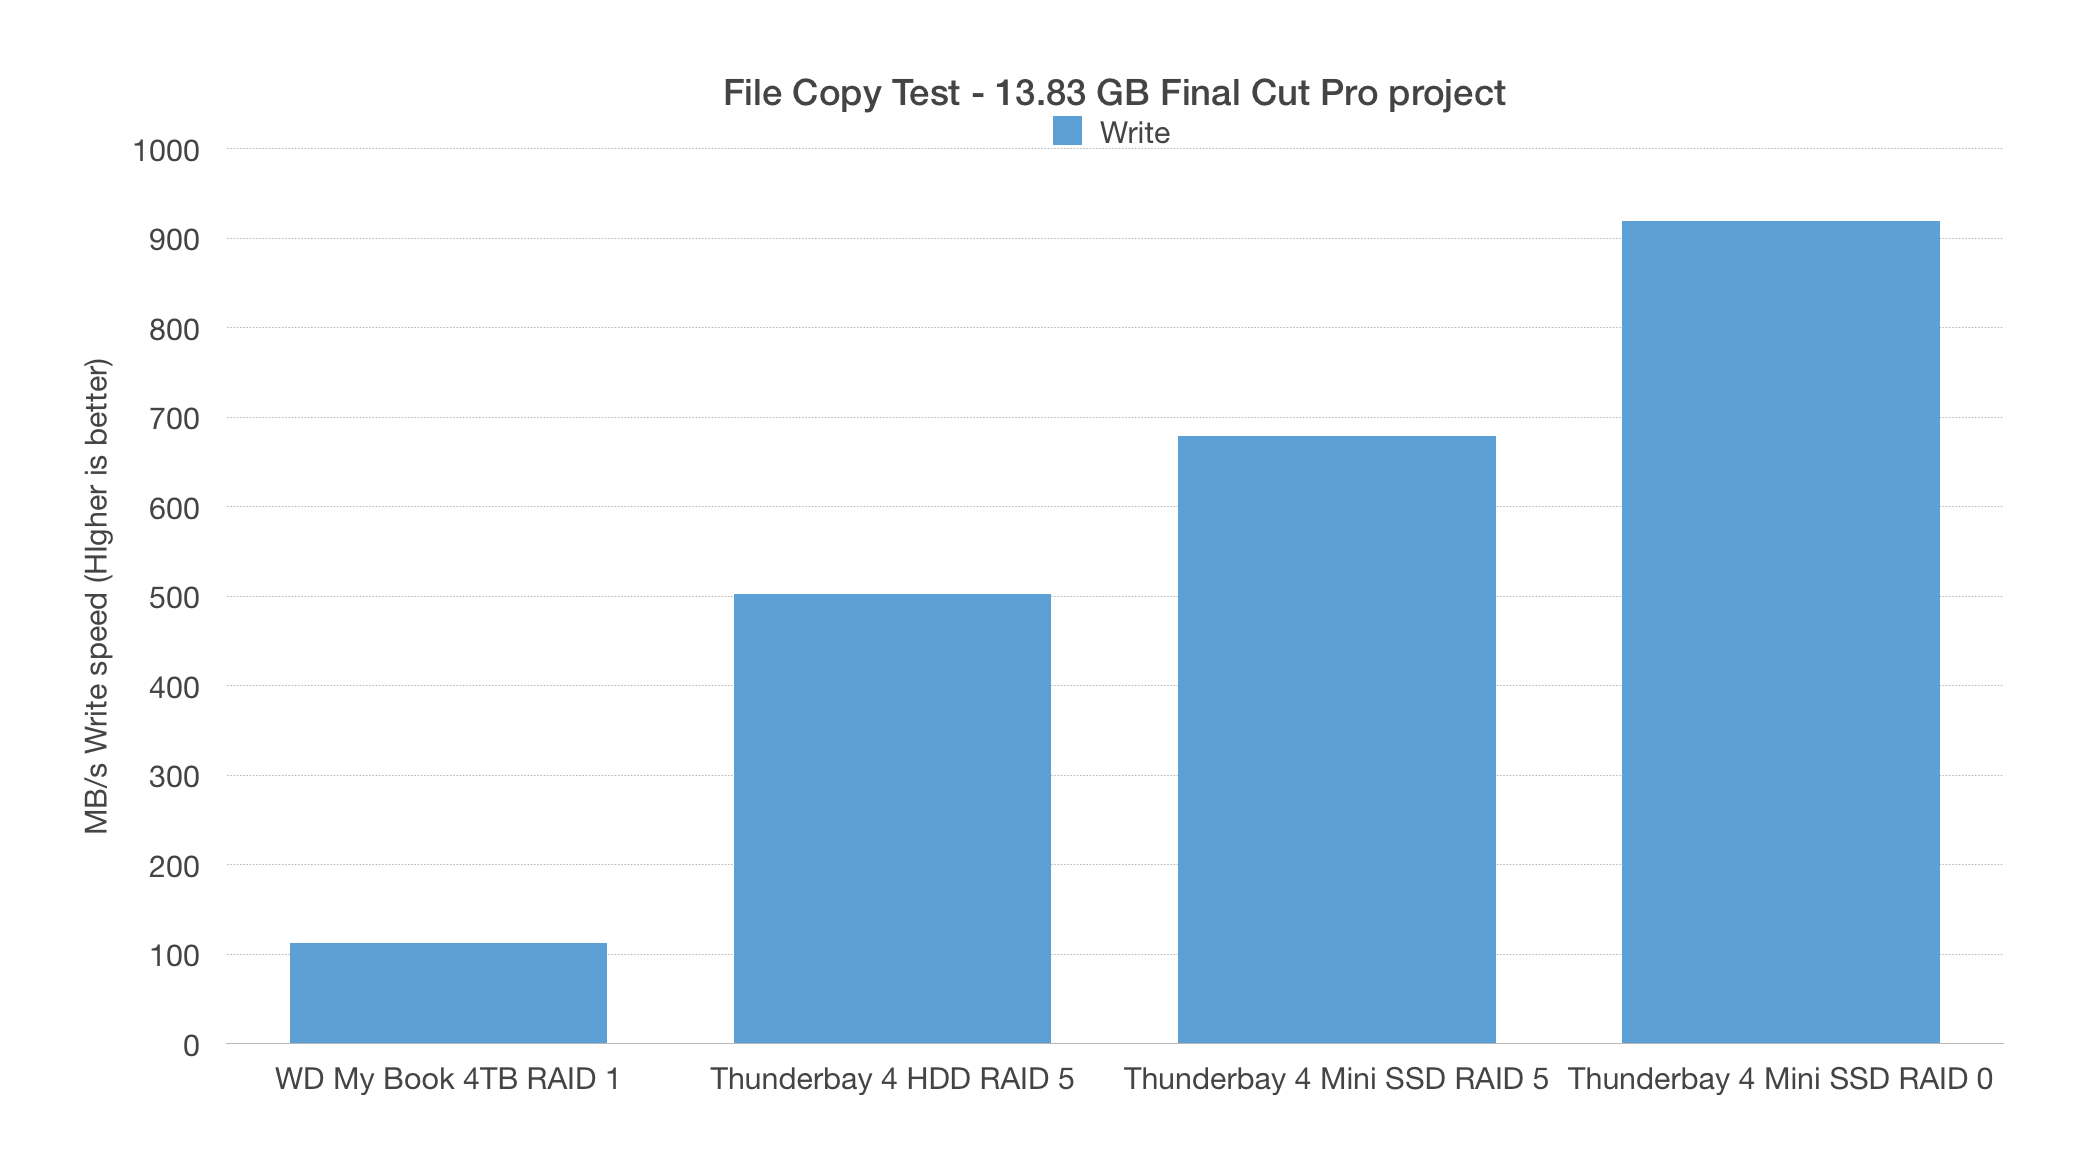 Thunderbay 4 SSD and HDD Thunderbolt 2 storage reviewed for